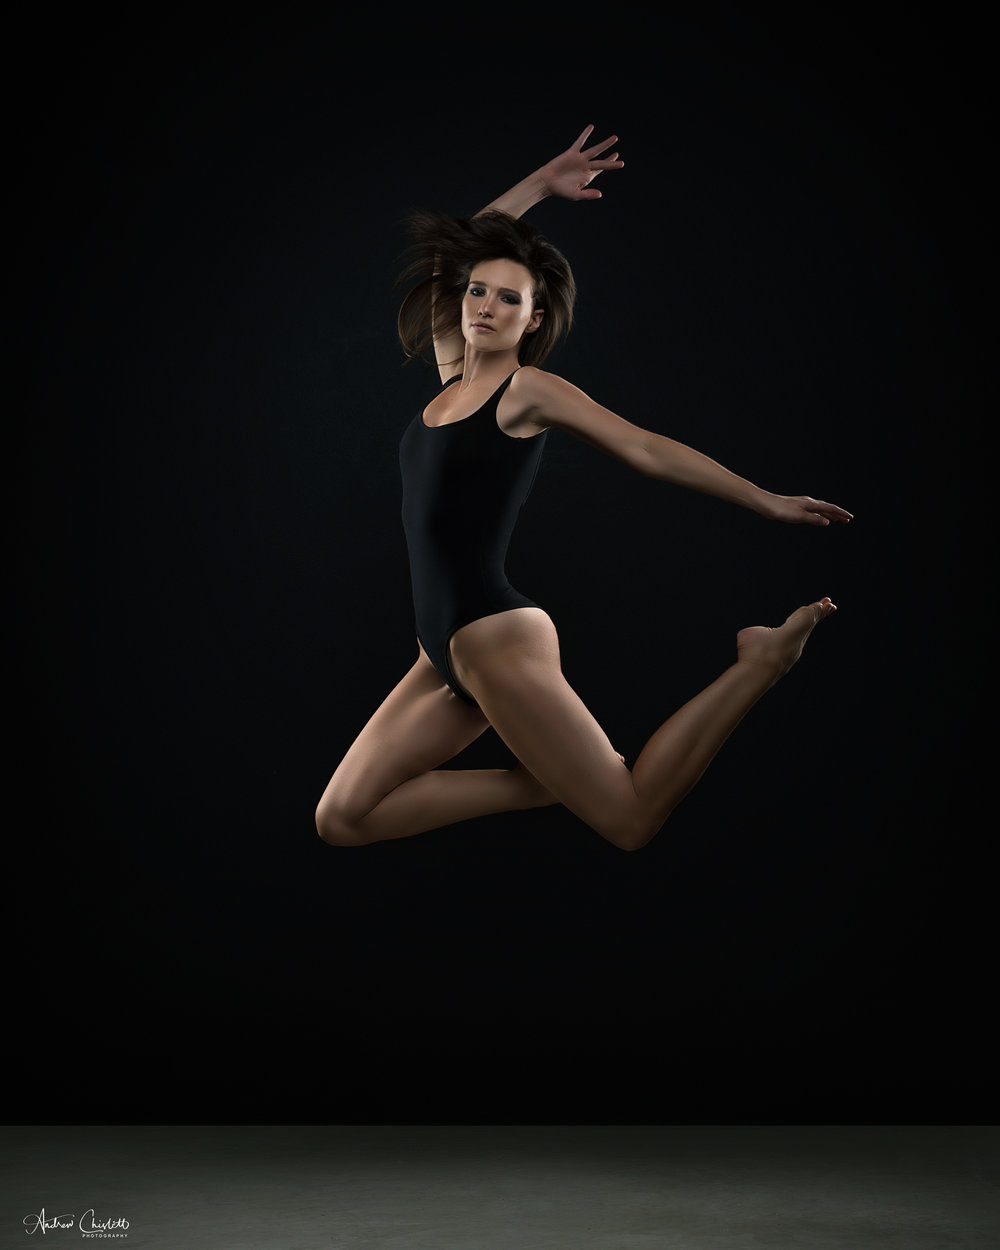 dance_photography.jpg